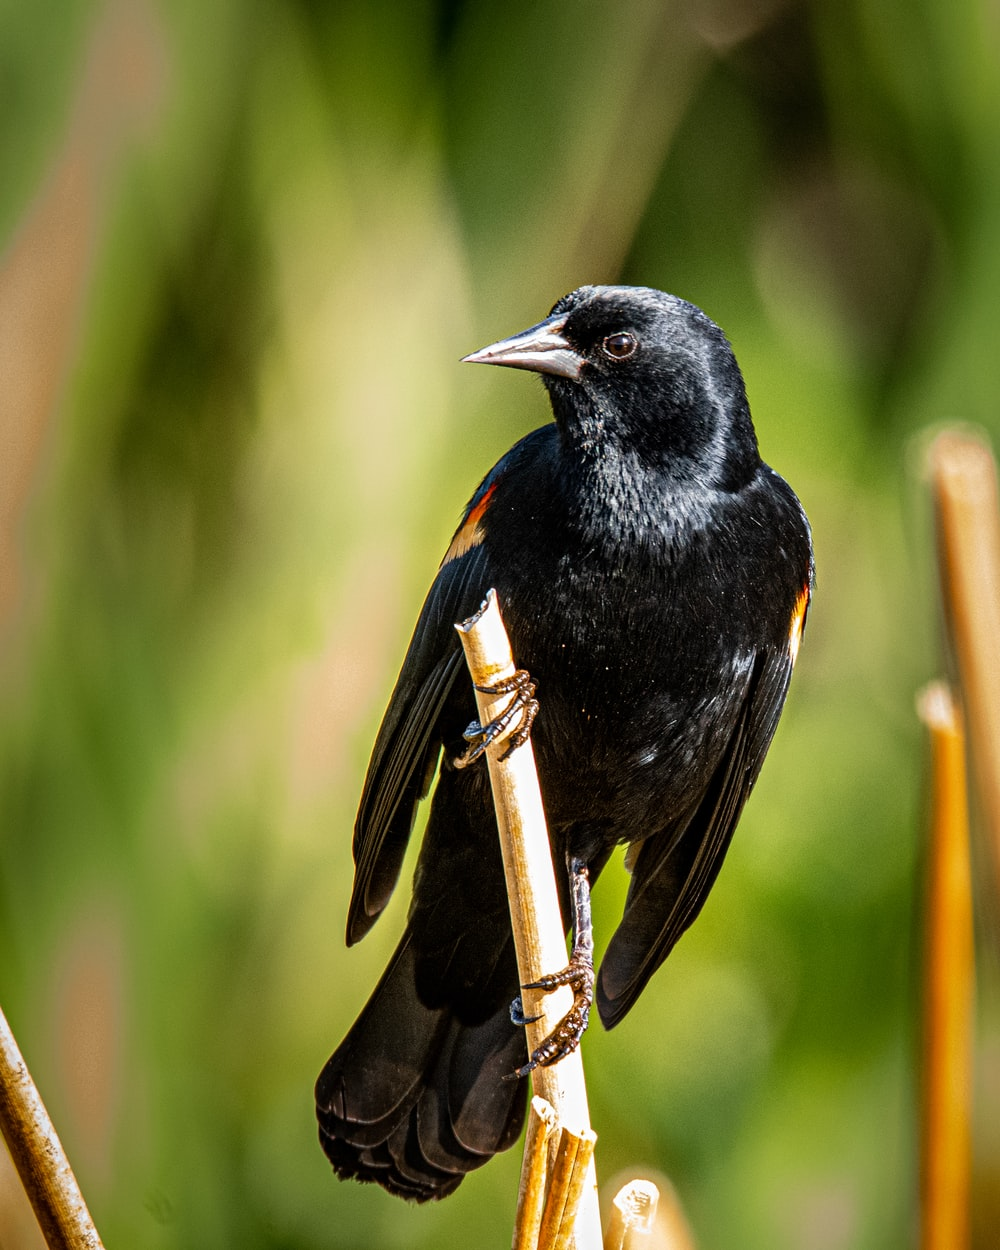 black bird on brown tree branch